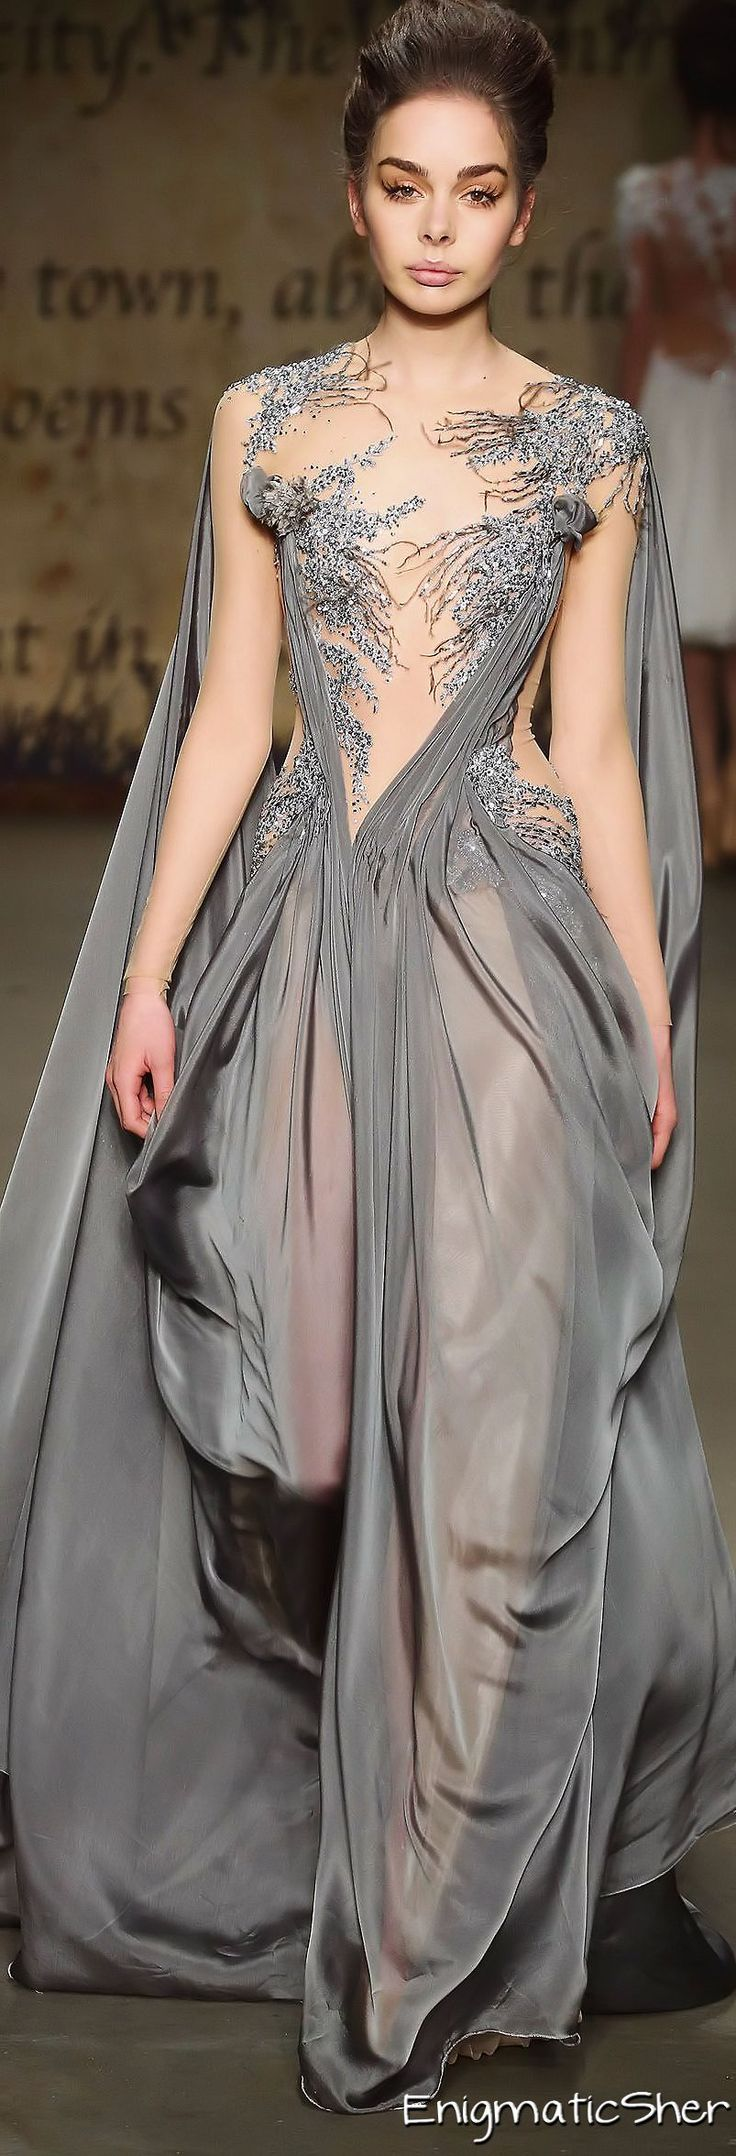 Asymetric draping and woodland embroidery over sheer sections (Edwin Oudshoorn)